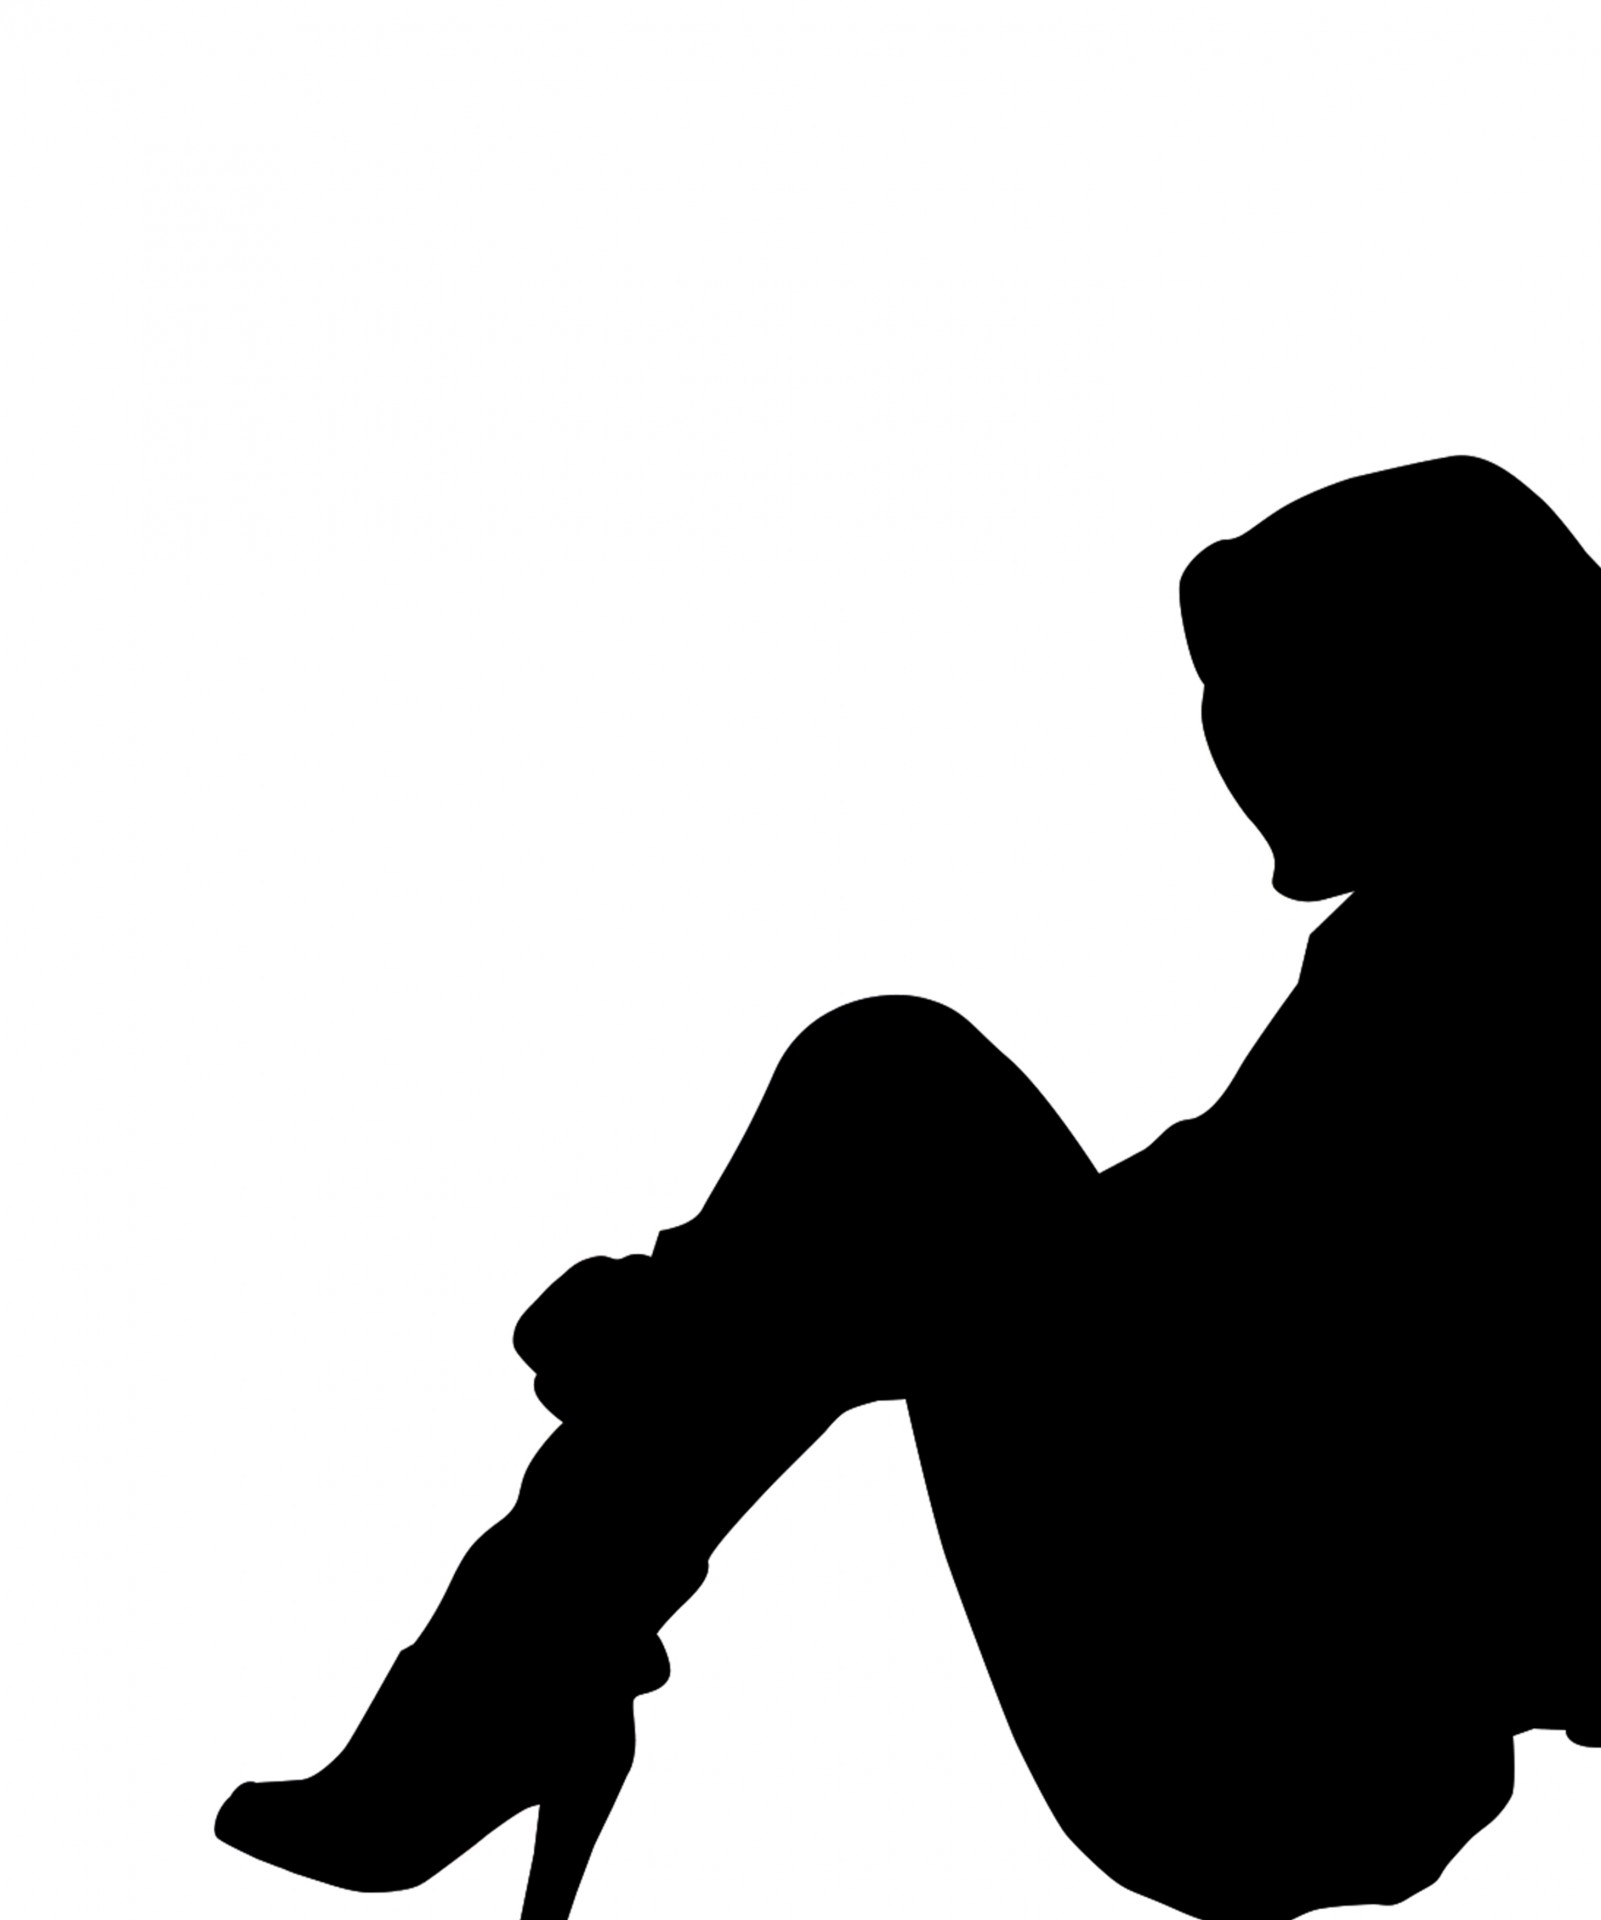 hight resolution of 1601x1920 person clipart silhouette woman